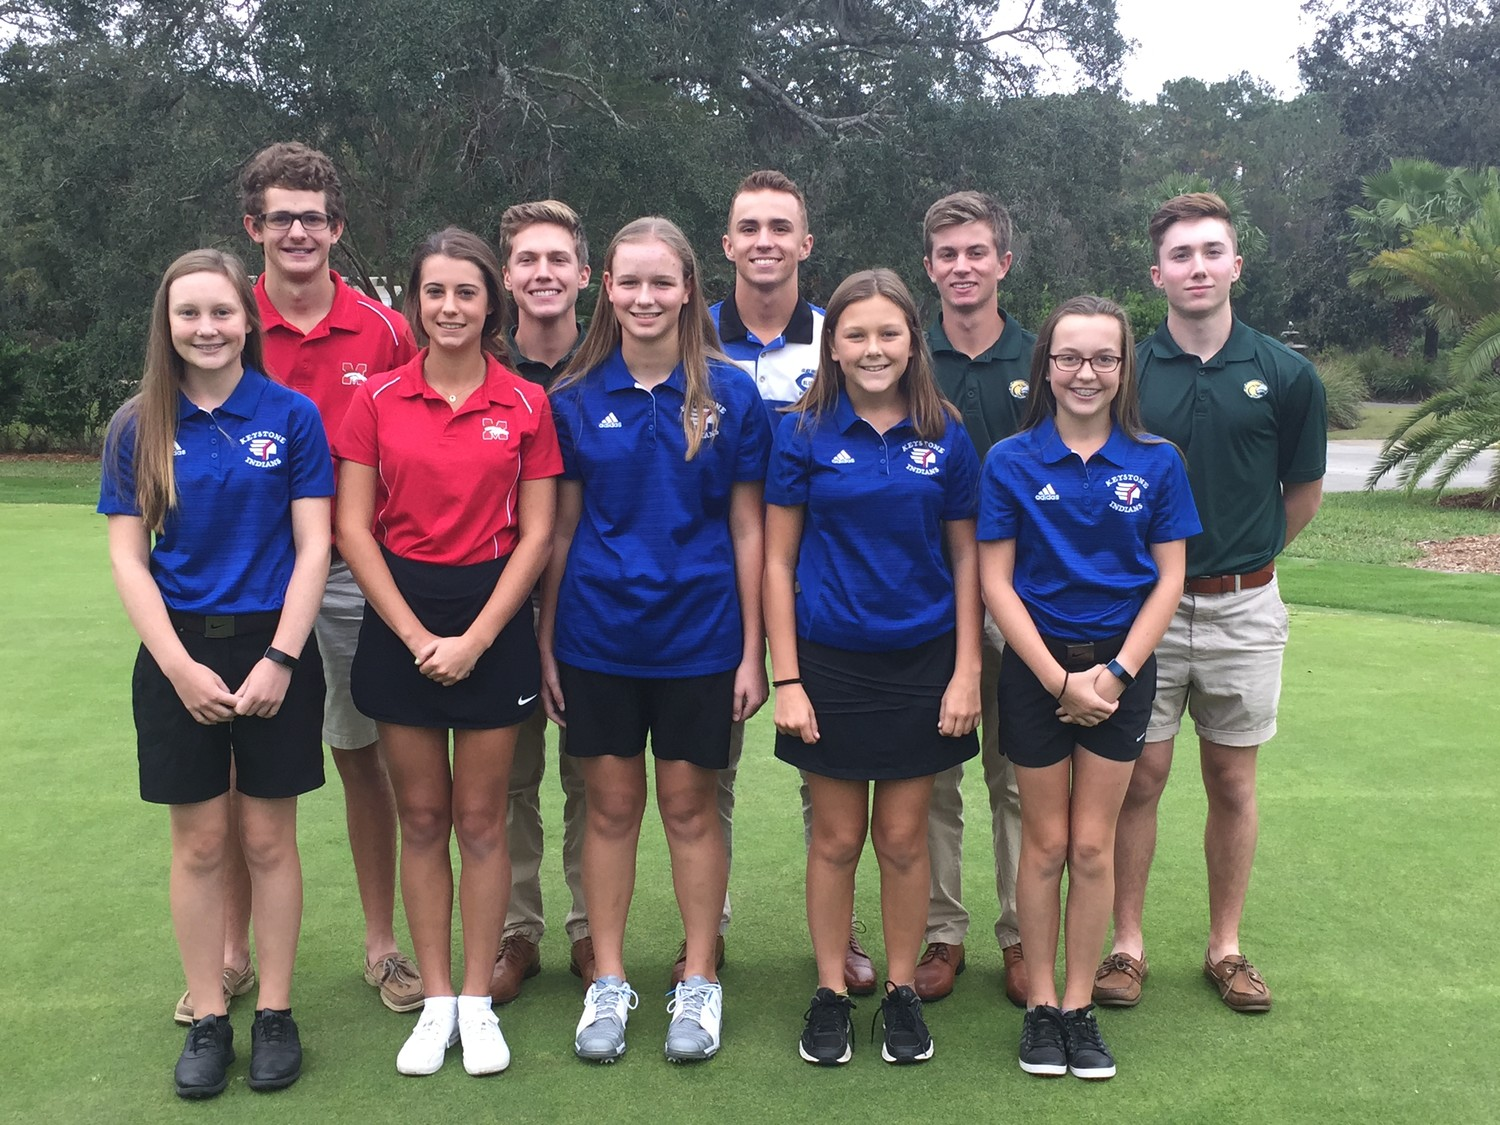 "Here is the inaugural ""Clay All-County Coaches Golf Team"" for the 2017-18 school year. In the front row, from left, are Camille Jackson, Victoria Green, Sloane Siebert, Savannah Heinz, Candice Jackson. From left is the back row are Cody Carroll, Peyton Billings, Arden Brake, Jacob Godwin, Tyler Broadus"